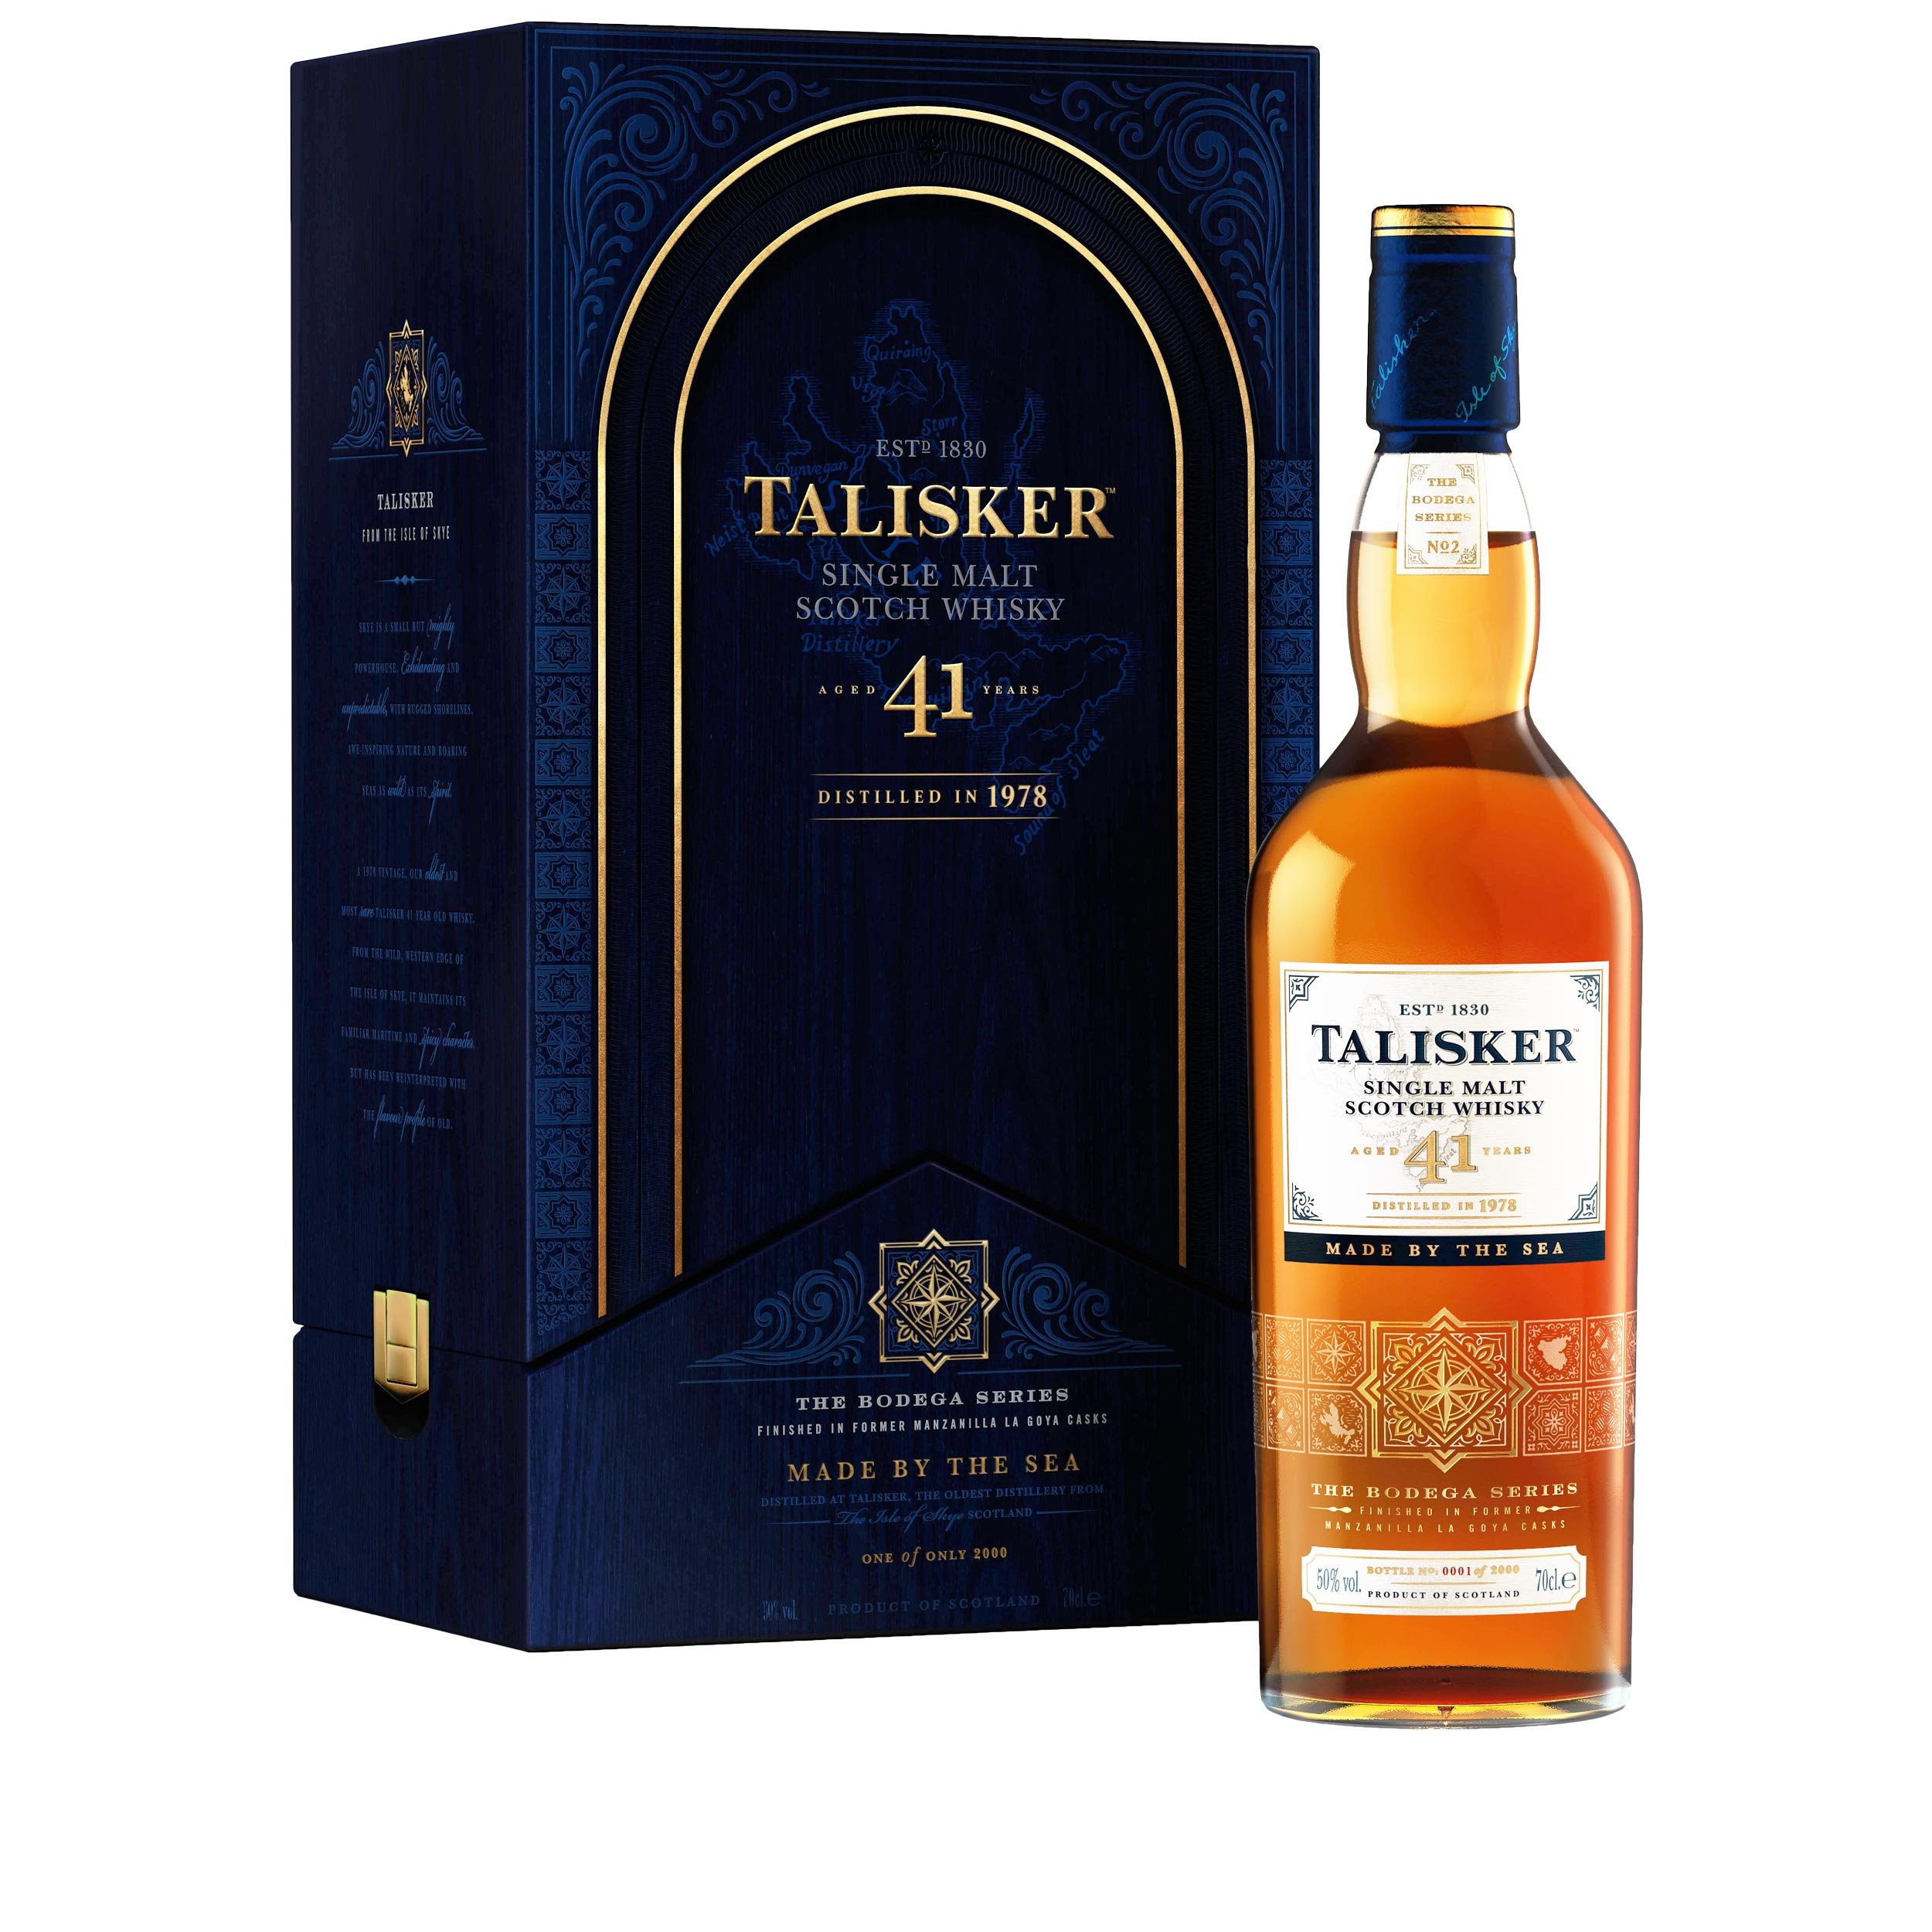 Talisker 41 Year Old Limited Edition Island Single Malt Scotch Whisky 70cl